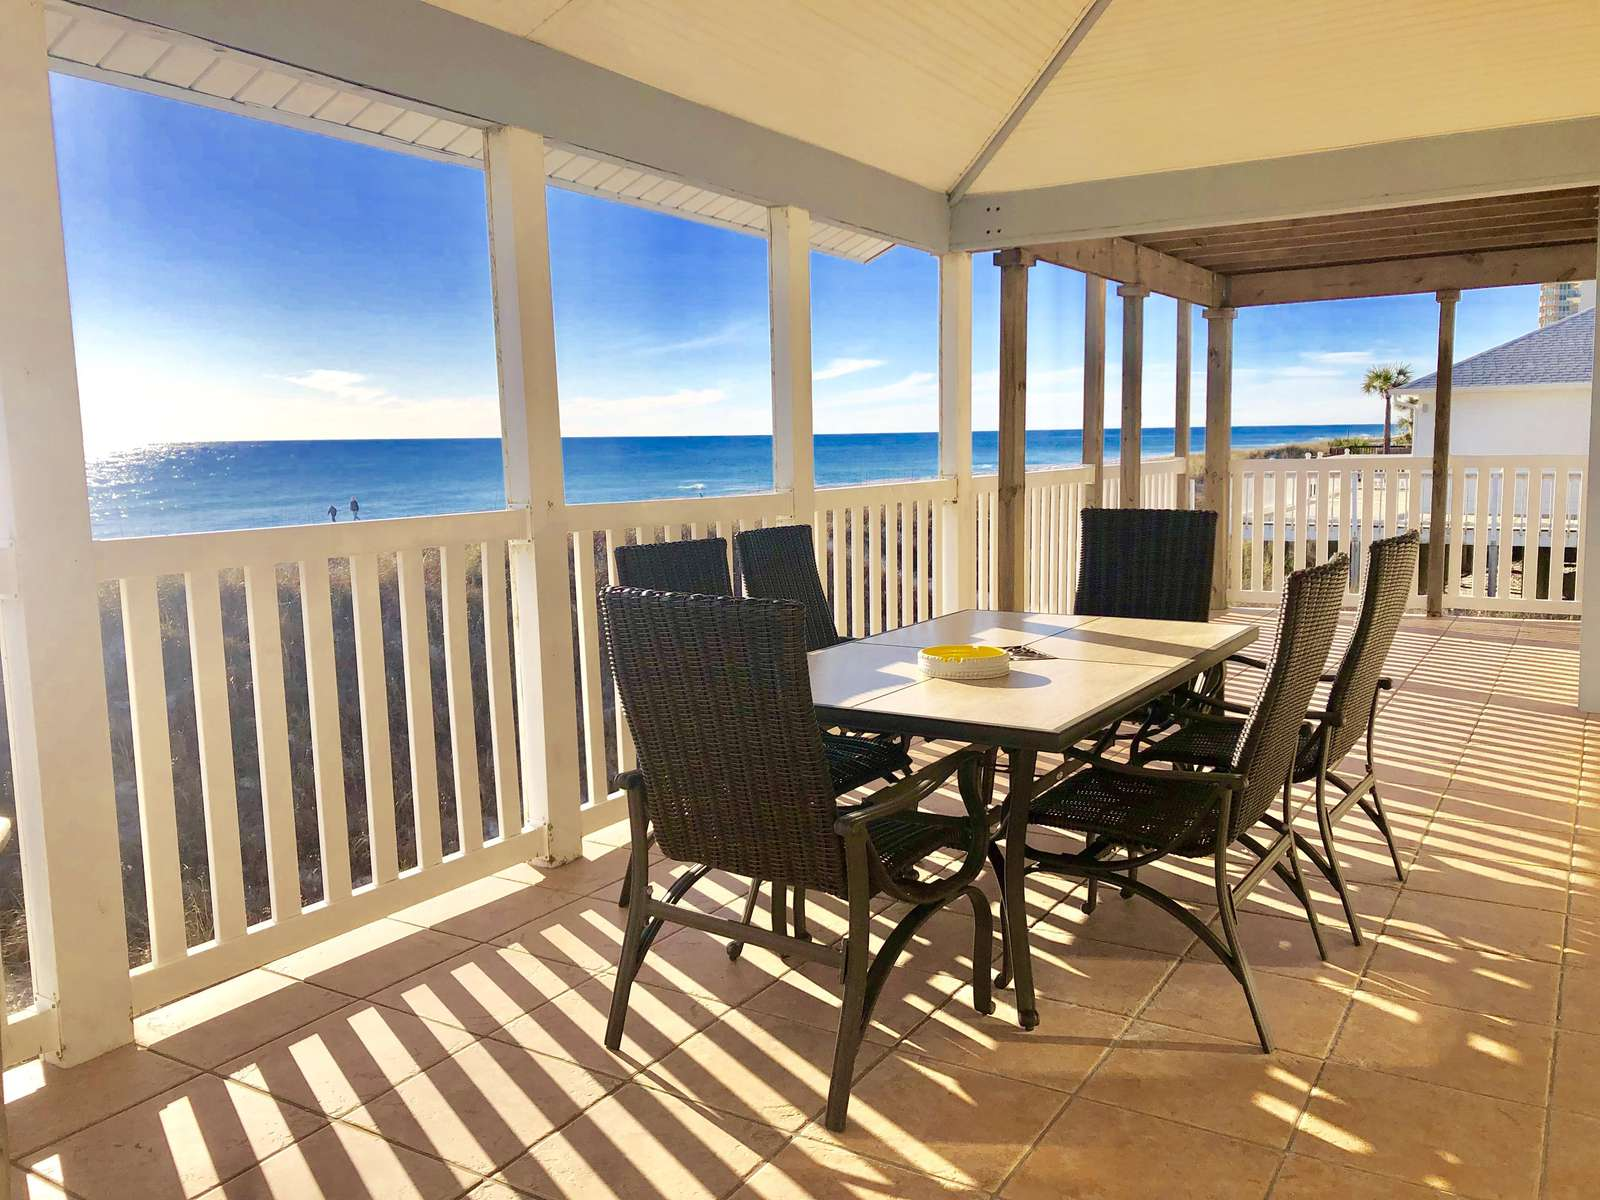 Back deck overlooking gulf with tables, chairs, grills, beach toys